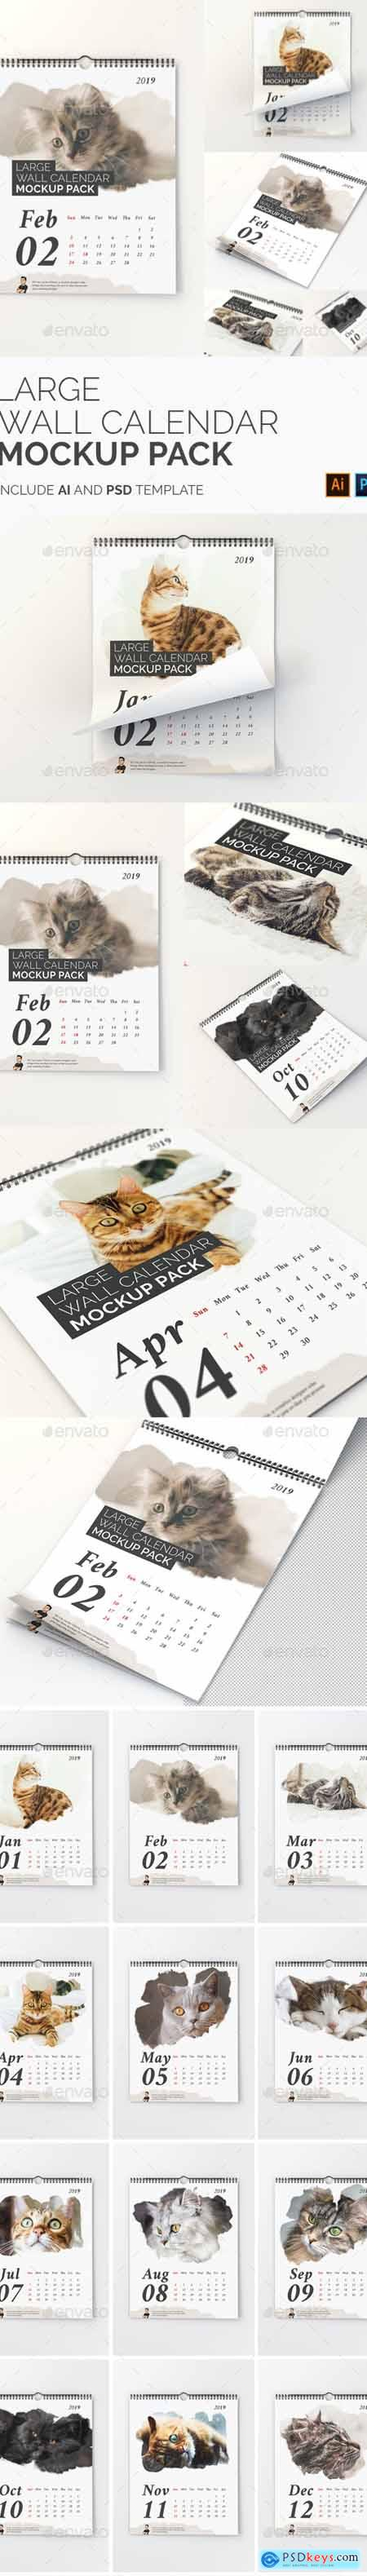 Large Wall Calendar Mockup Pack 22857806